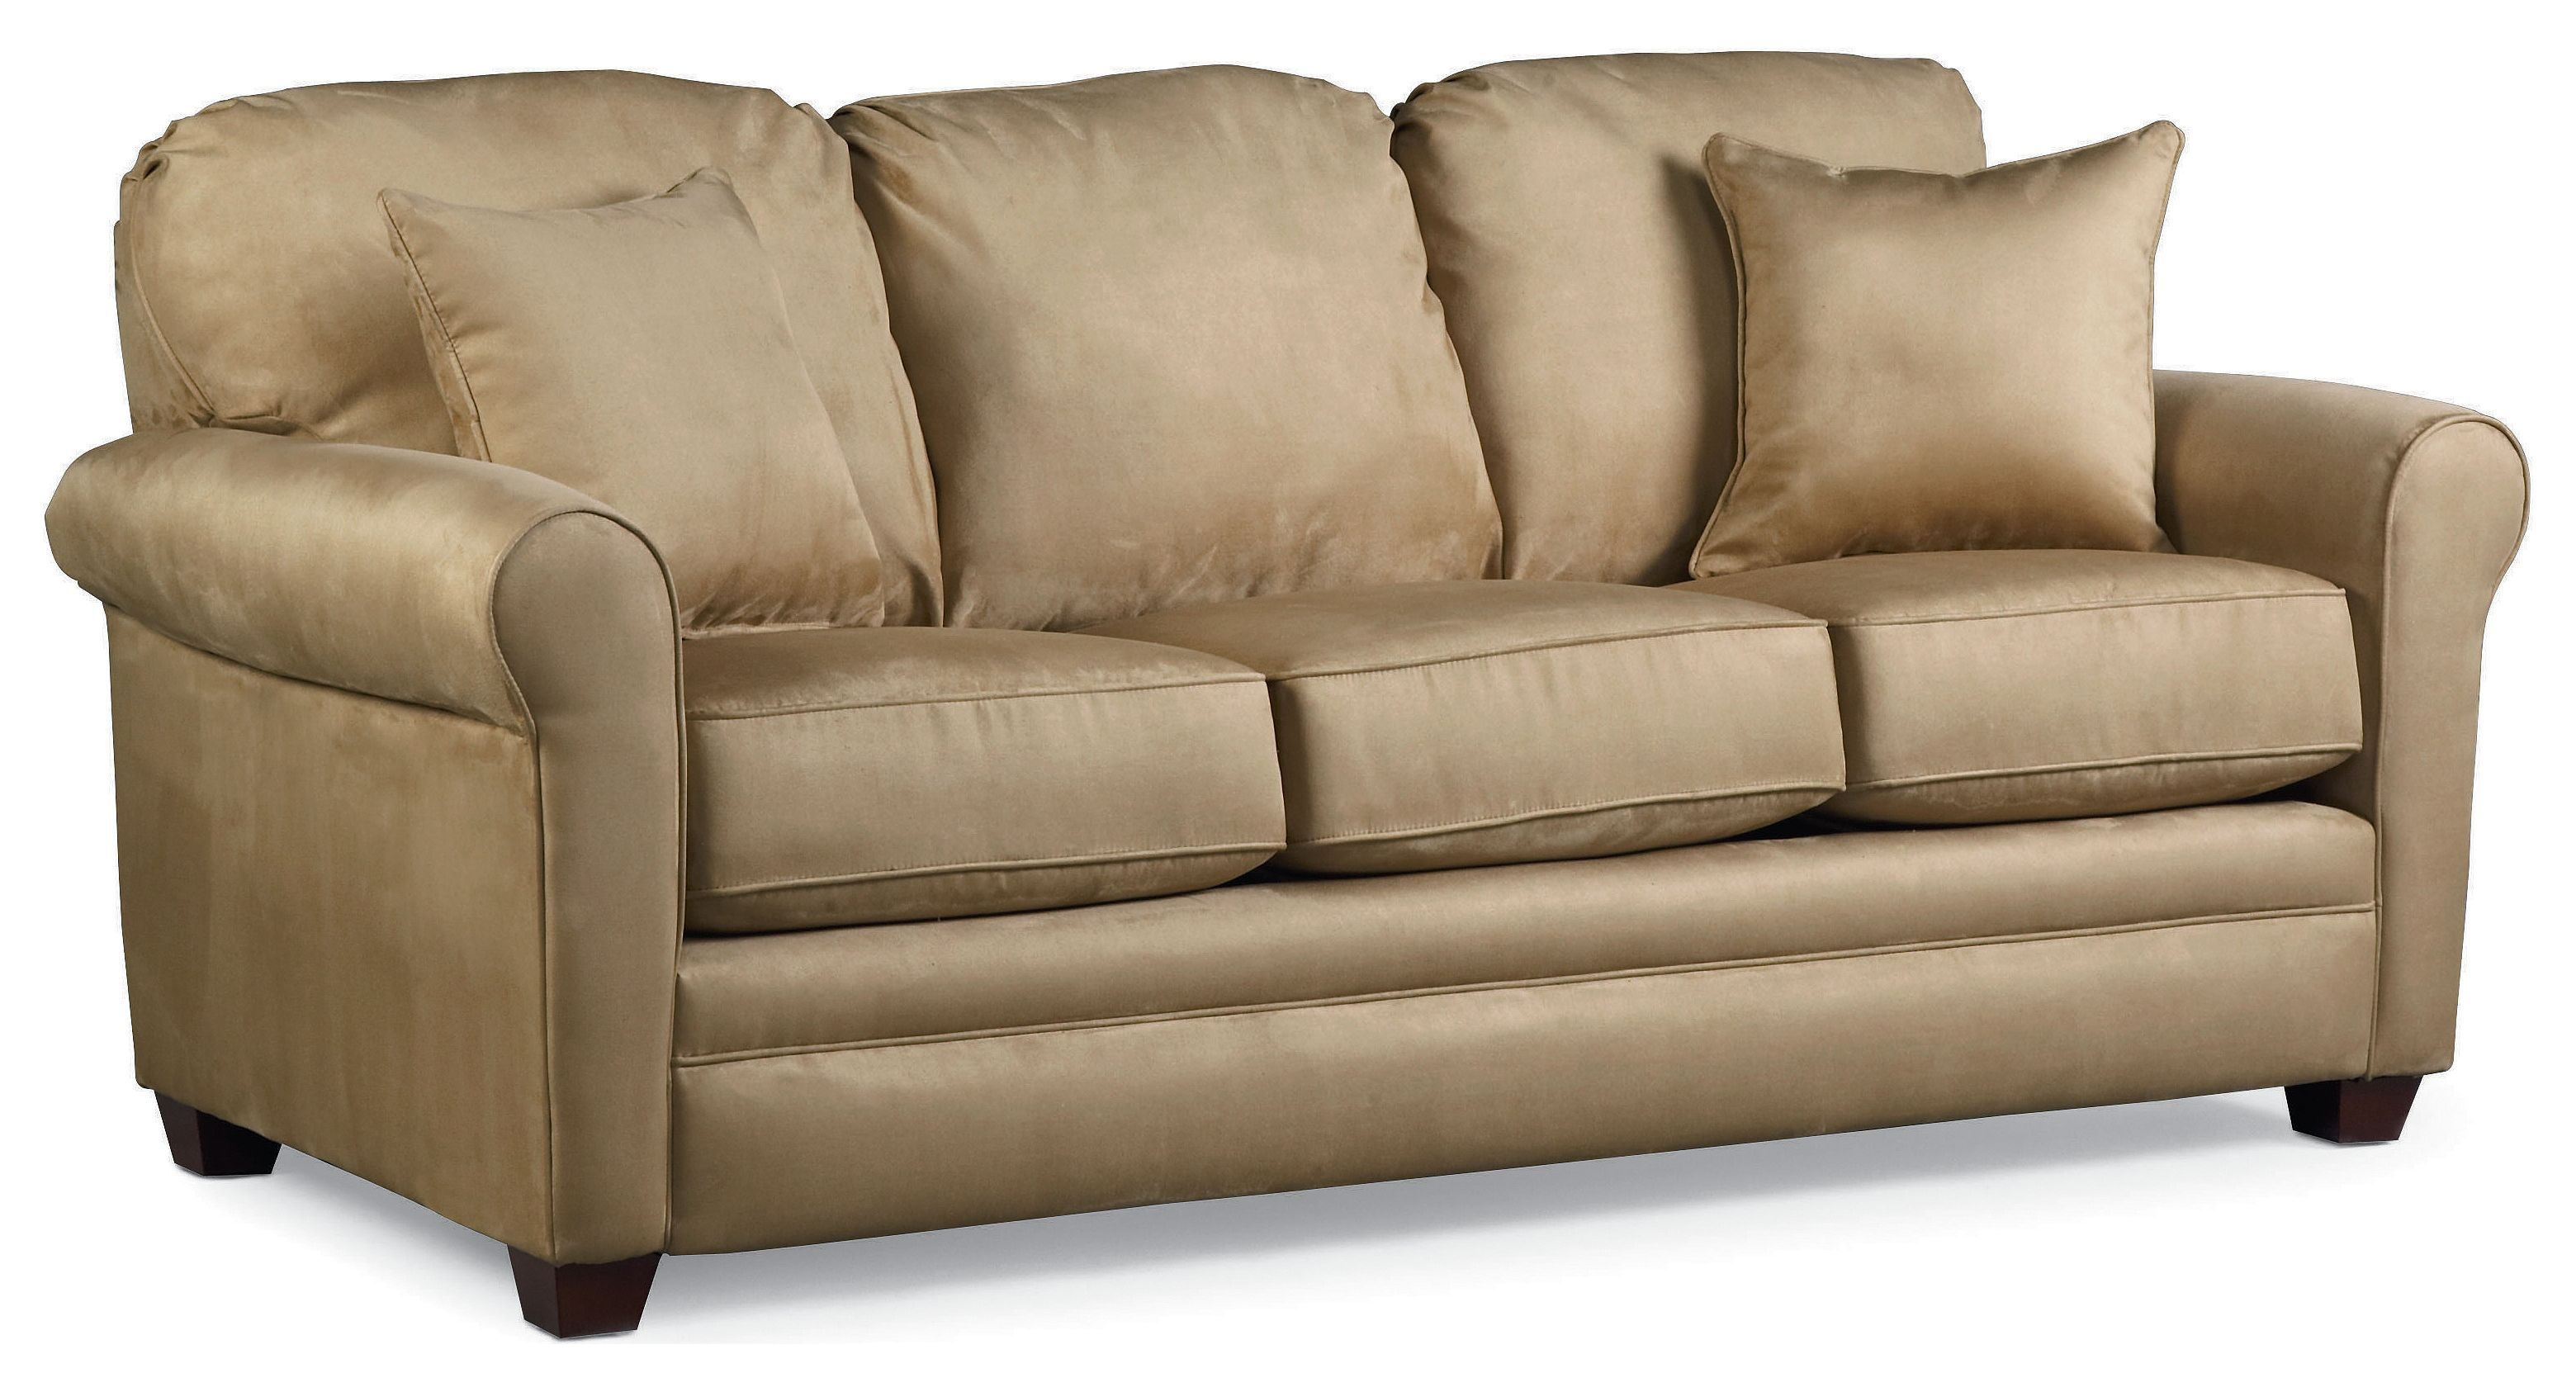 Leather Sofa Sleepers Queen Size Cool Leather Sofa Sleepers Queen